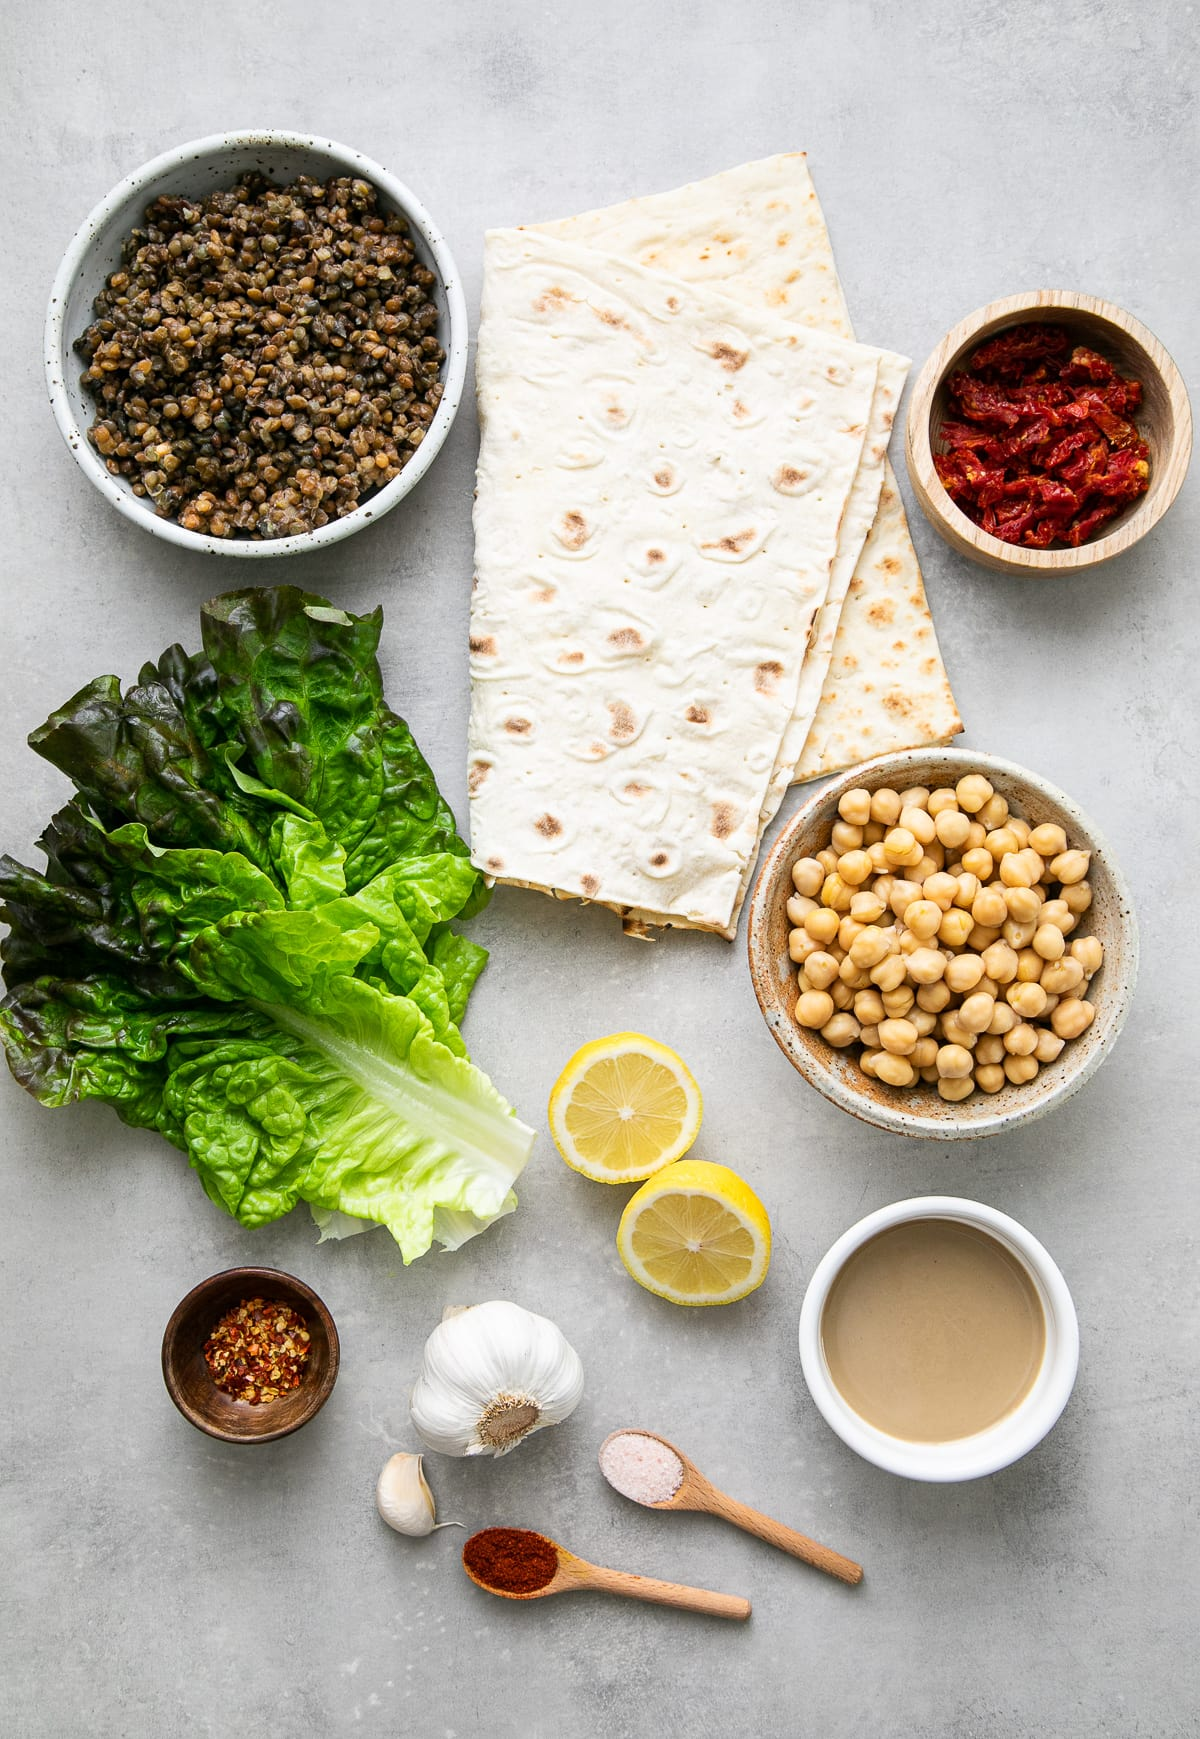 top down view of ingredients used to make lentil wrap with sun-dried tomato hummus.